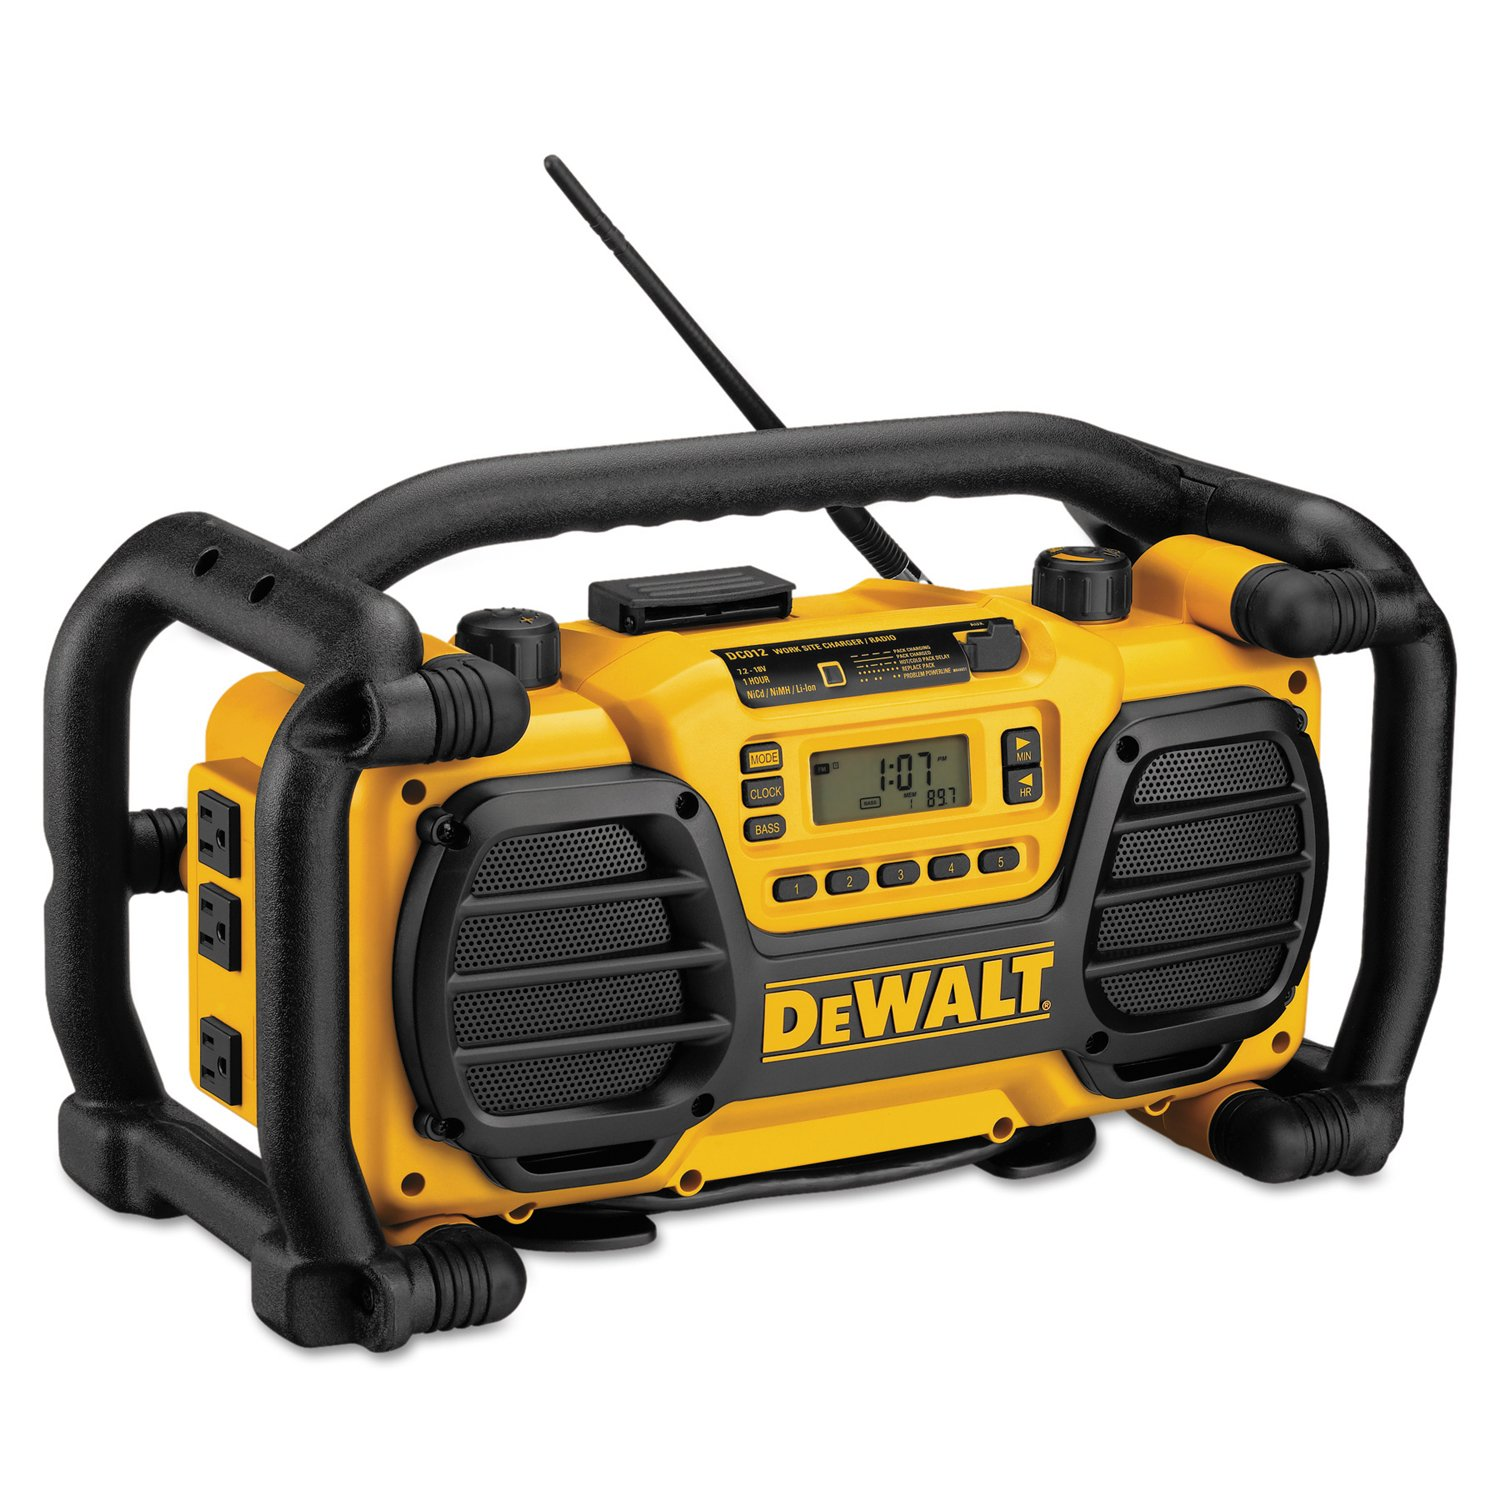 DEWALT Jobsite Radio and Battery Charger